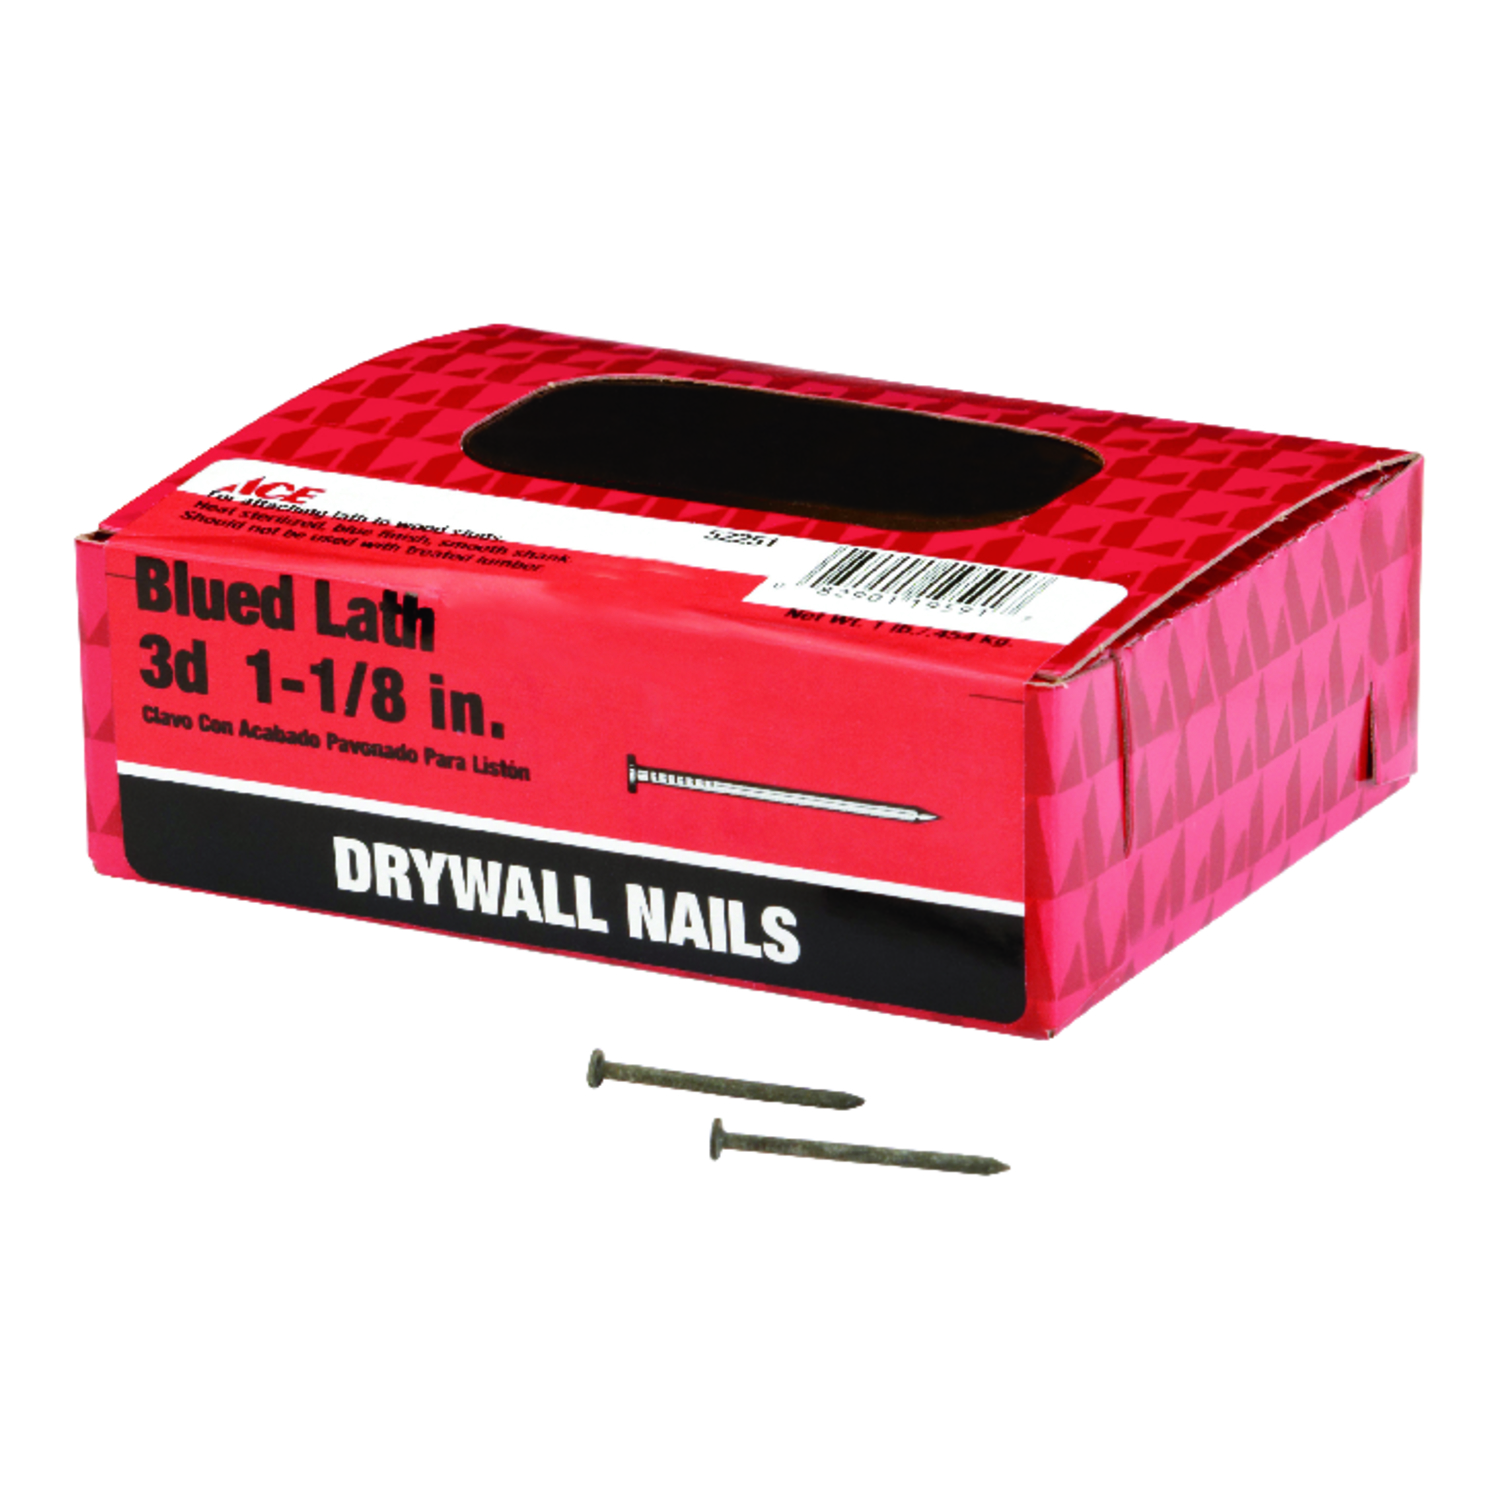 Ace  3D  1-1/8 in. L Drywall  Steel  Nail  Flat Head Smooth  1  1 lb.